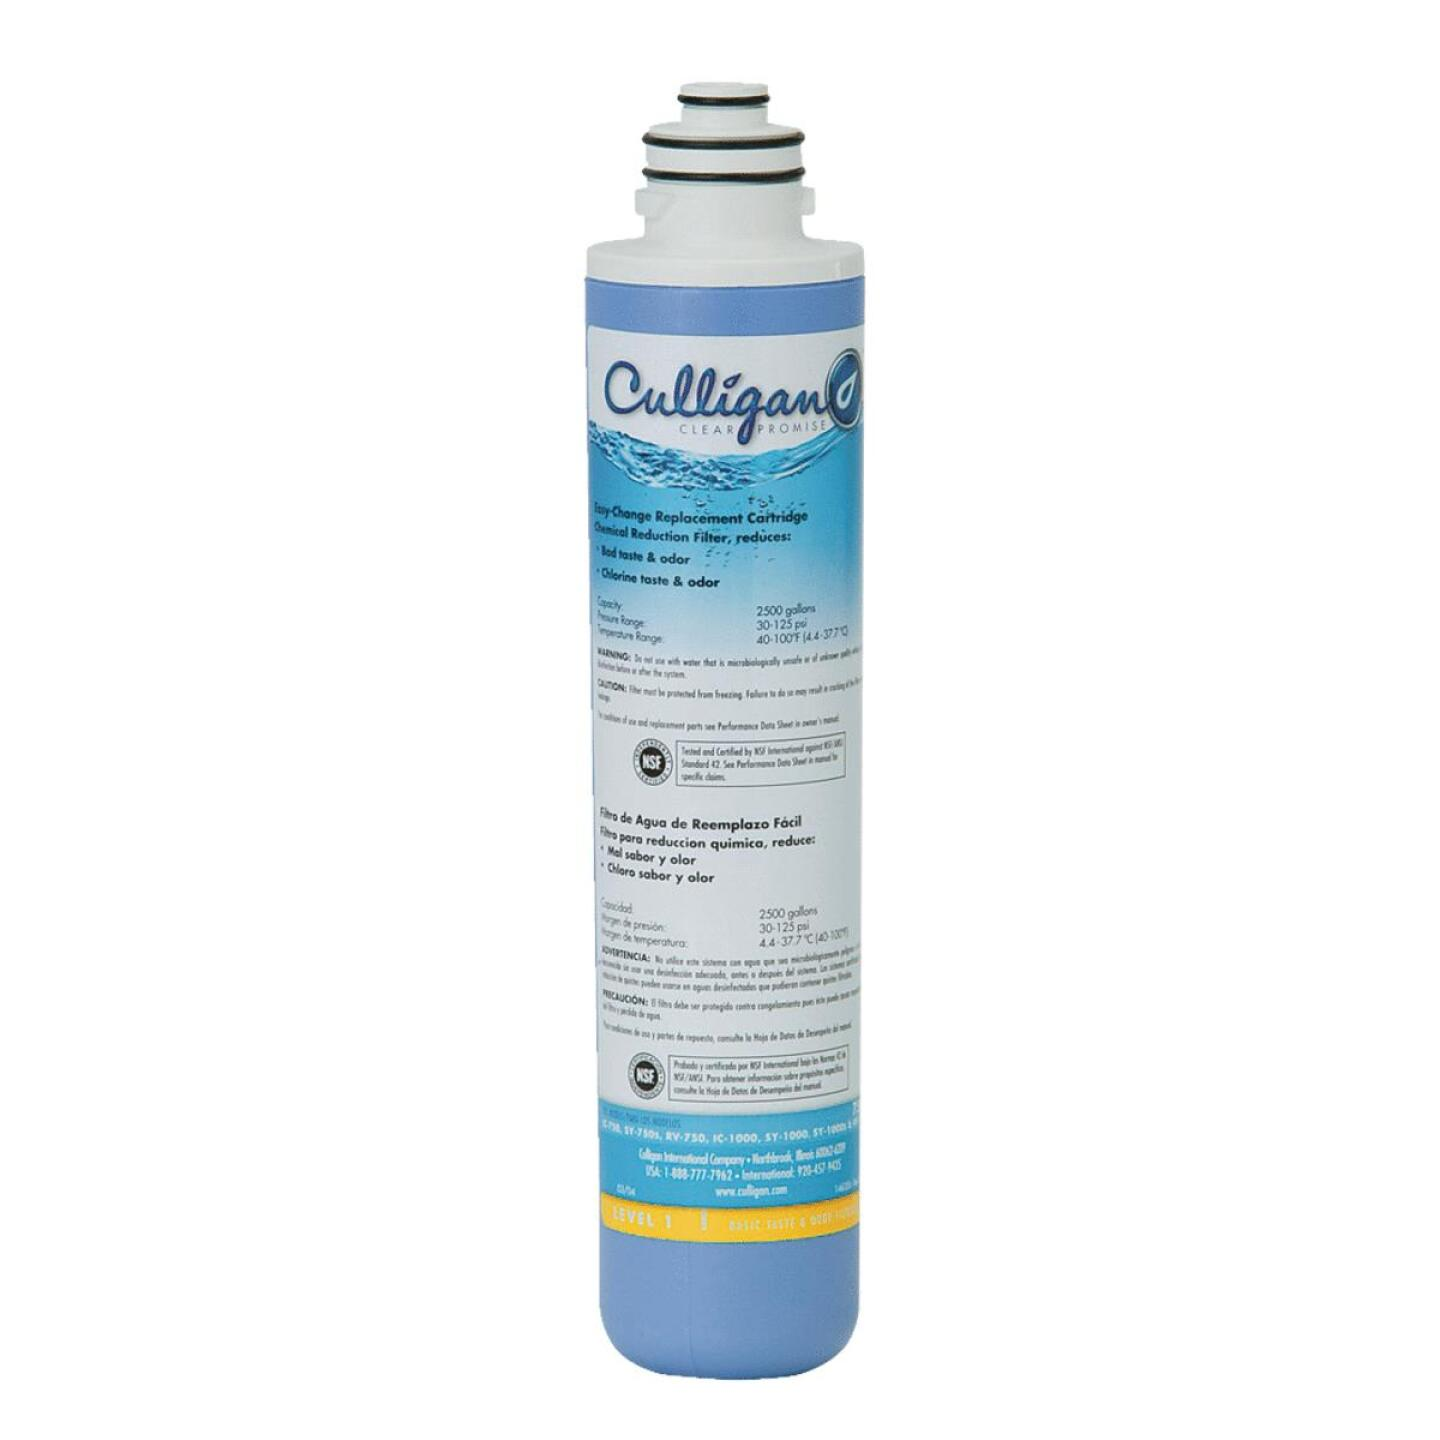 Culligan 750R Ice Maker And Refrigerator Water Filter Cartridge Image 1